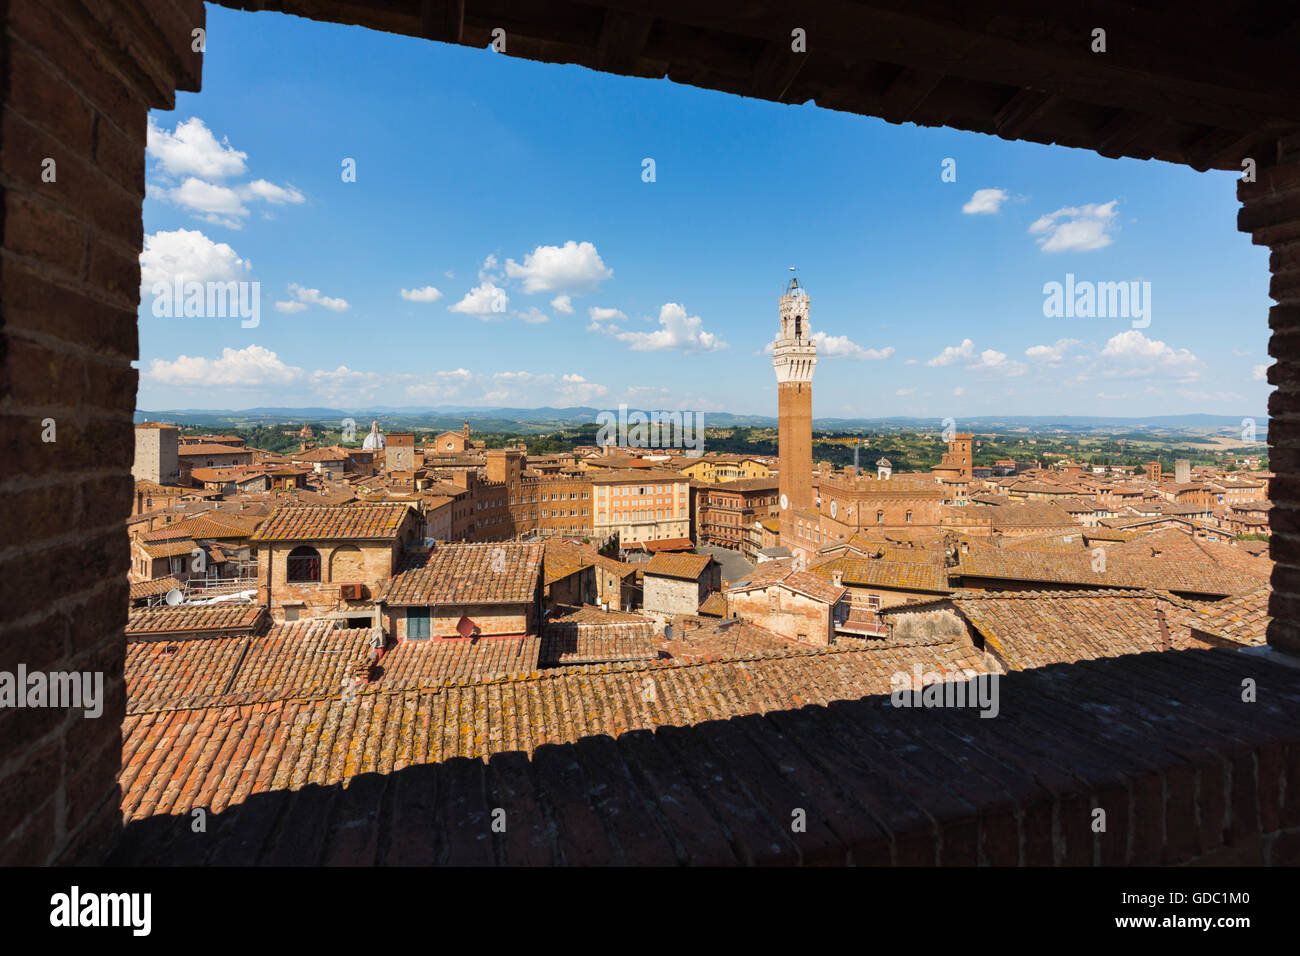 Siena, Siena Province, Tuscany, Italy.  Piazza del Campo and Torre del Mangia.  High view. - Stock Image